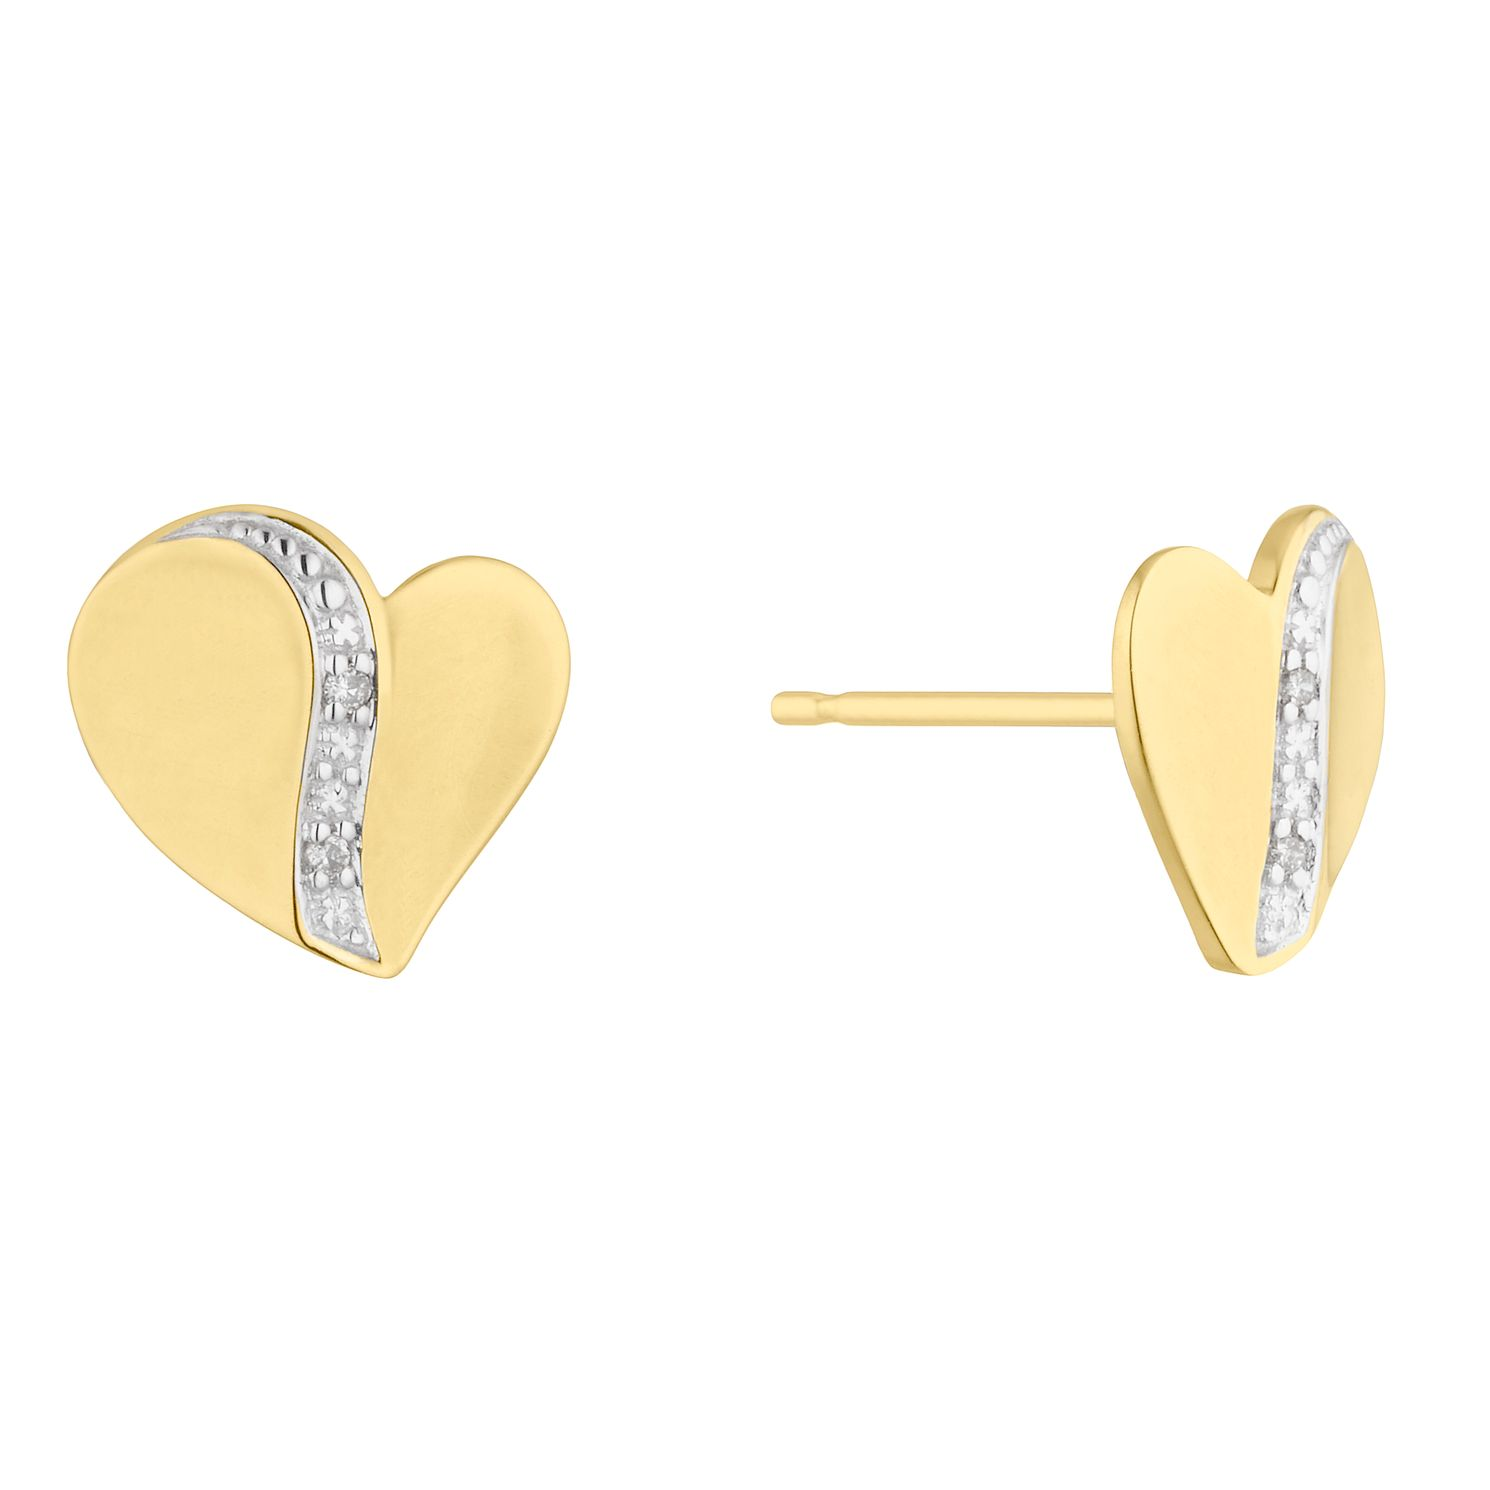 9ct Yellow Gold and Diamond Heart Stud Earrings - Product number 5044081